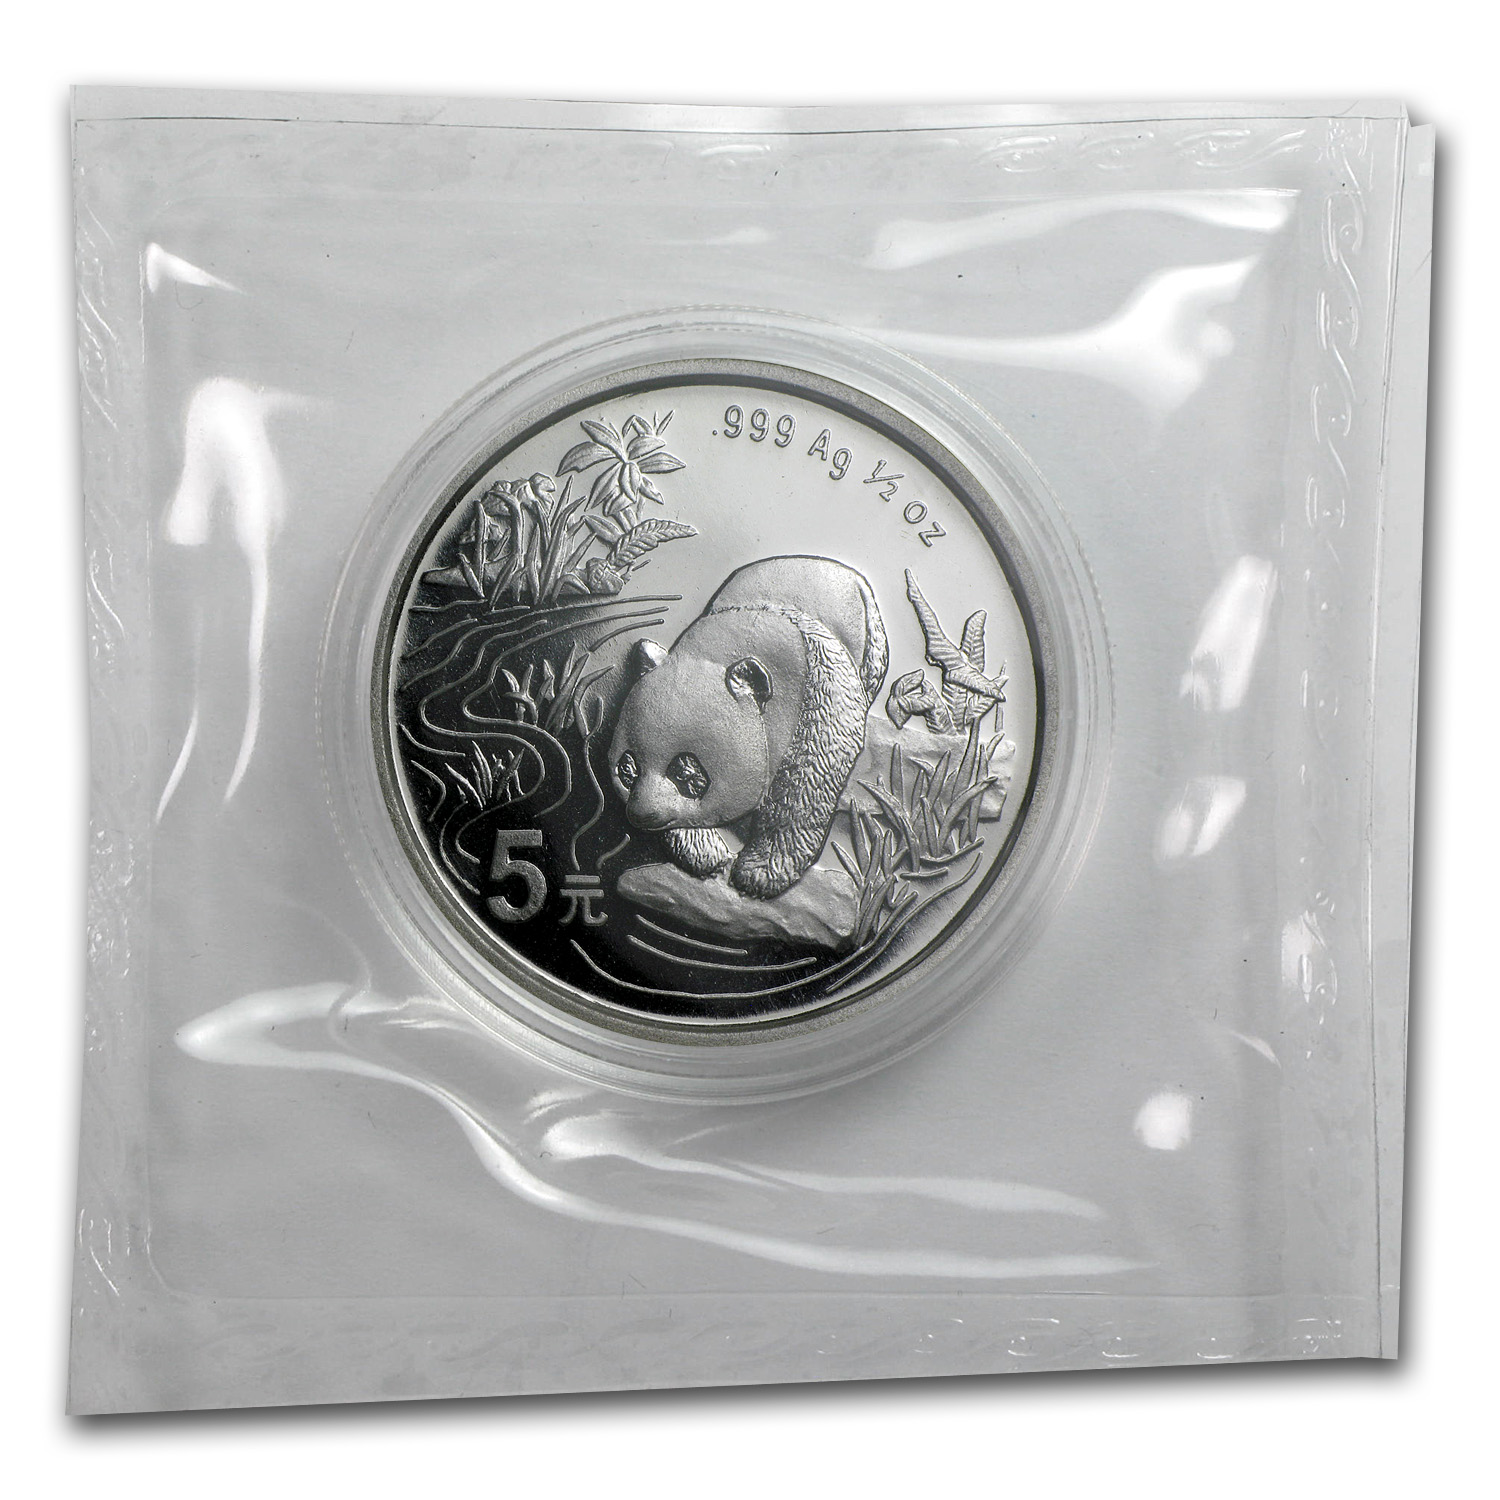 1997 1/2 oz Silver Chinese Panda Hong Kong Expo (Sealed)